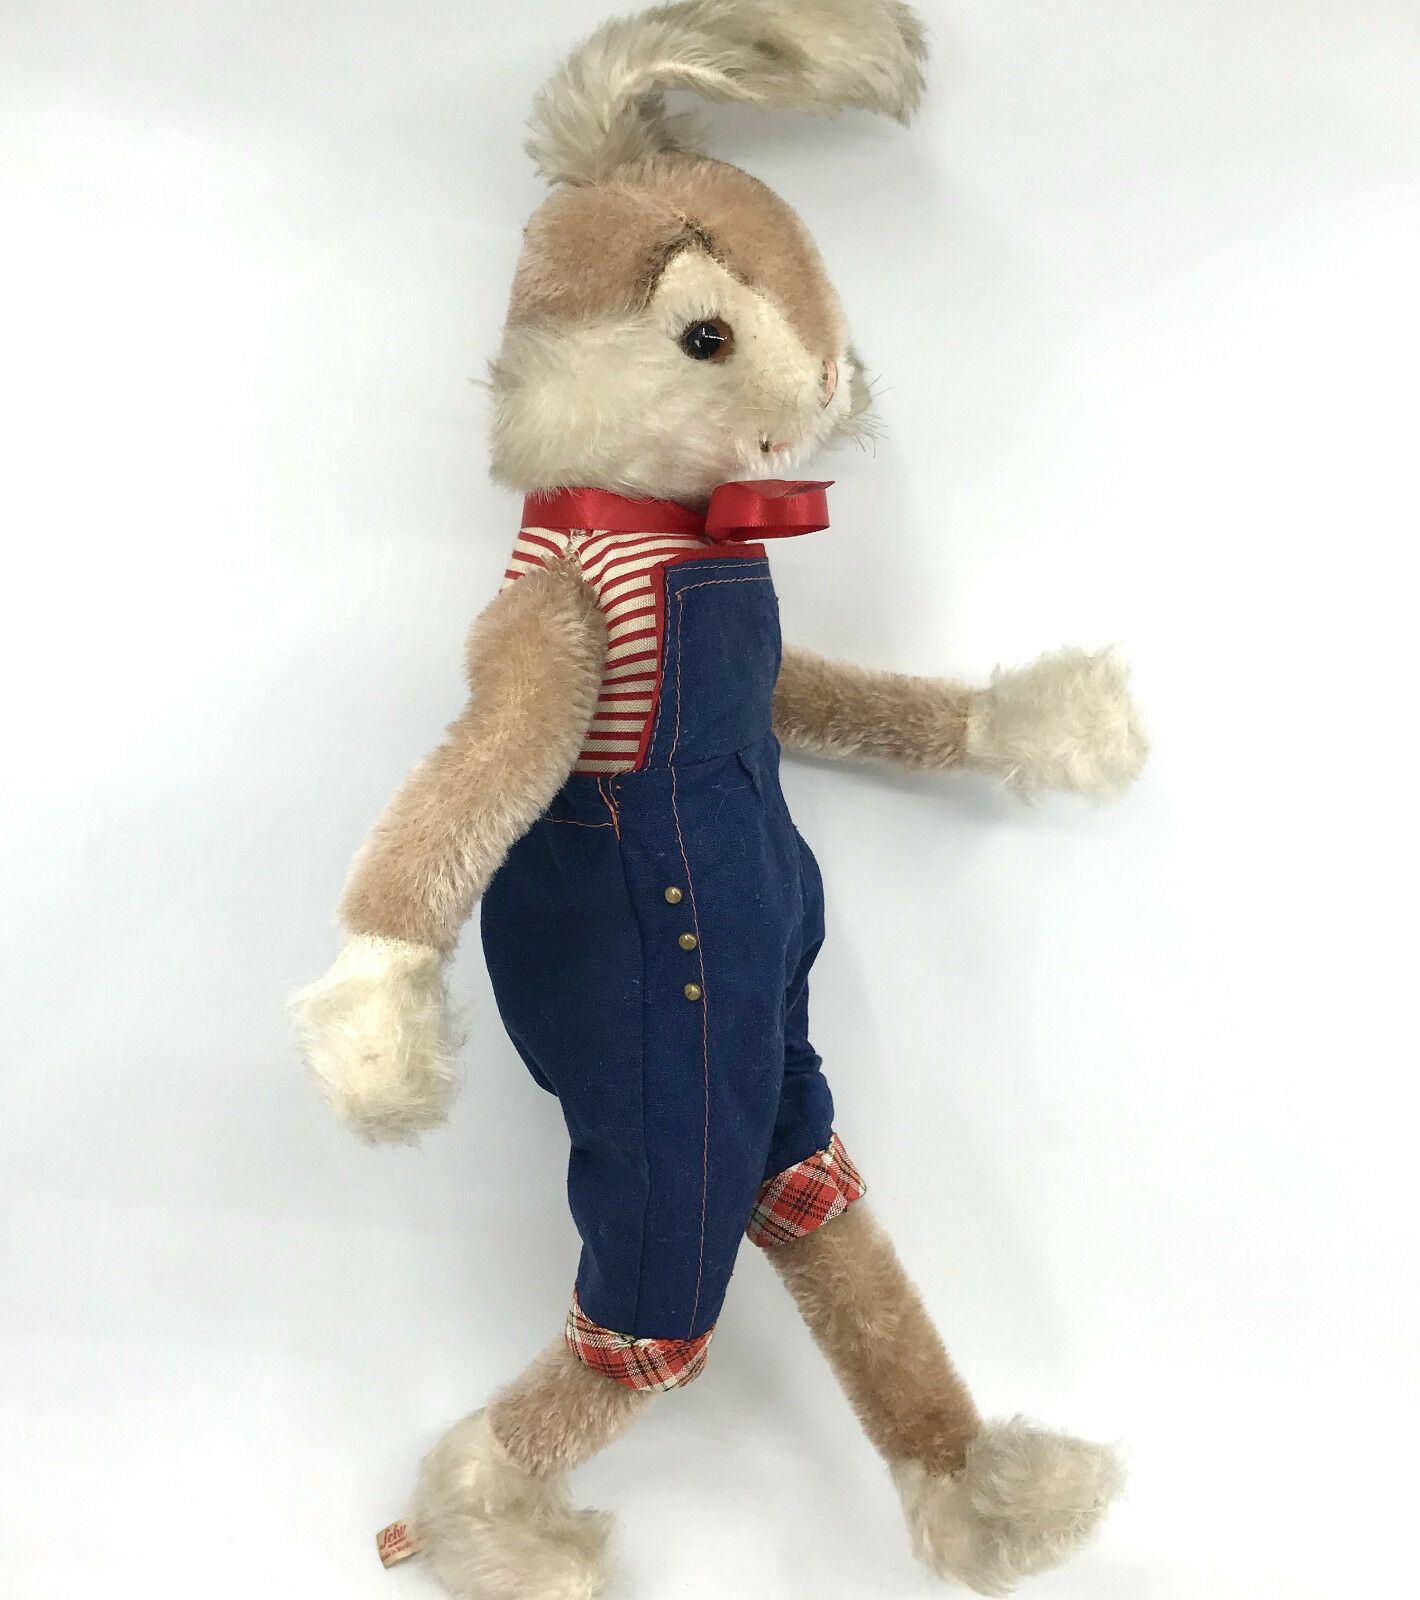 Schuco Rabbit Doll Bigo Bello Flexi 38cm 15in Tag Squeaker 1960s Denim Overalls